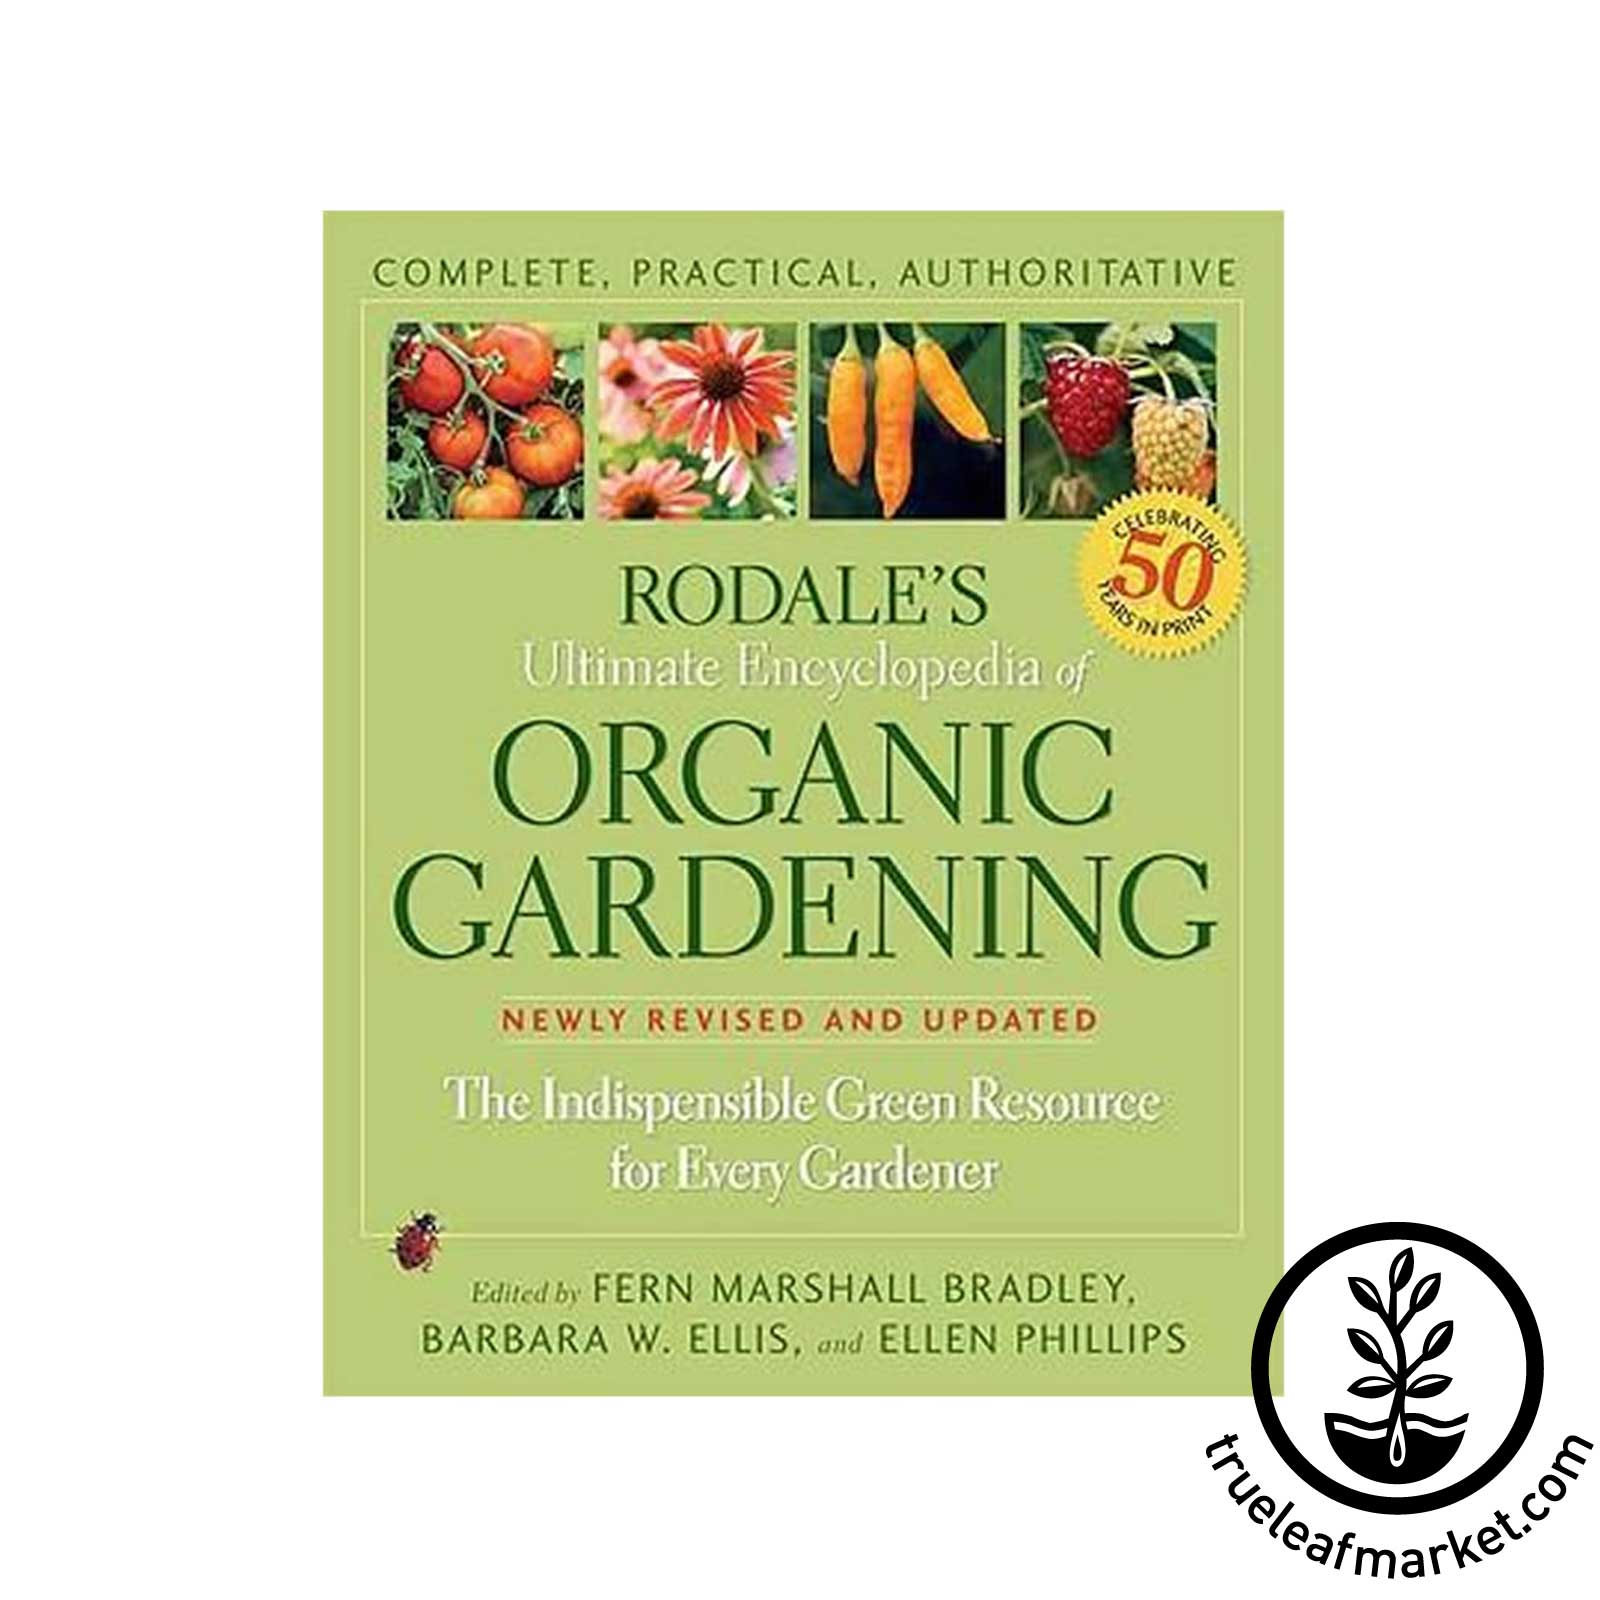 Rodales Ultimate Encyclopedia of Organic Gardening Book